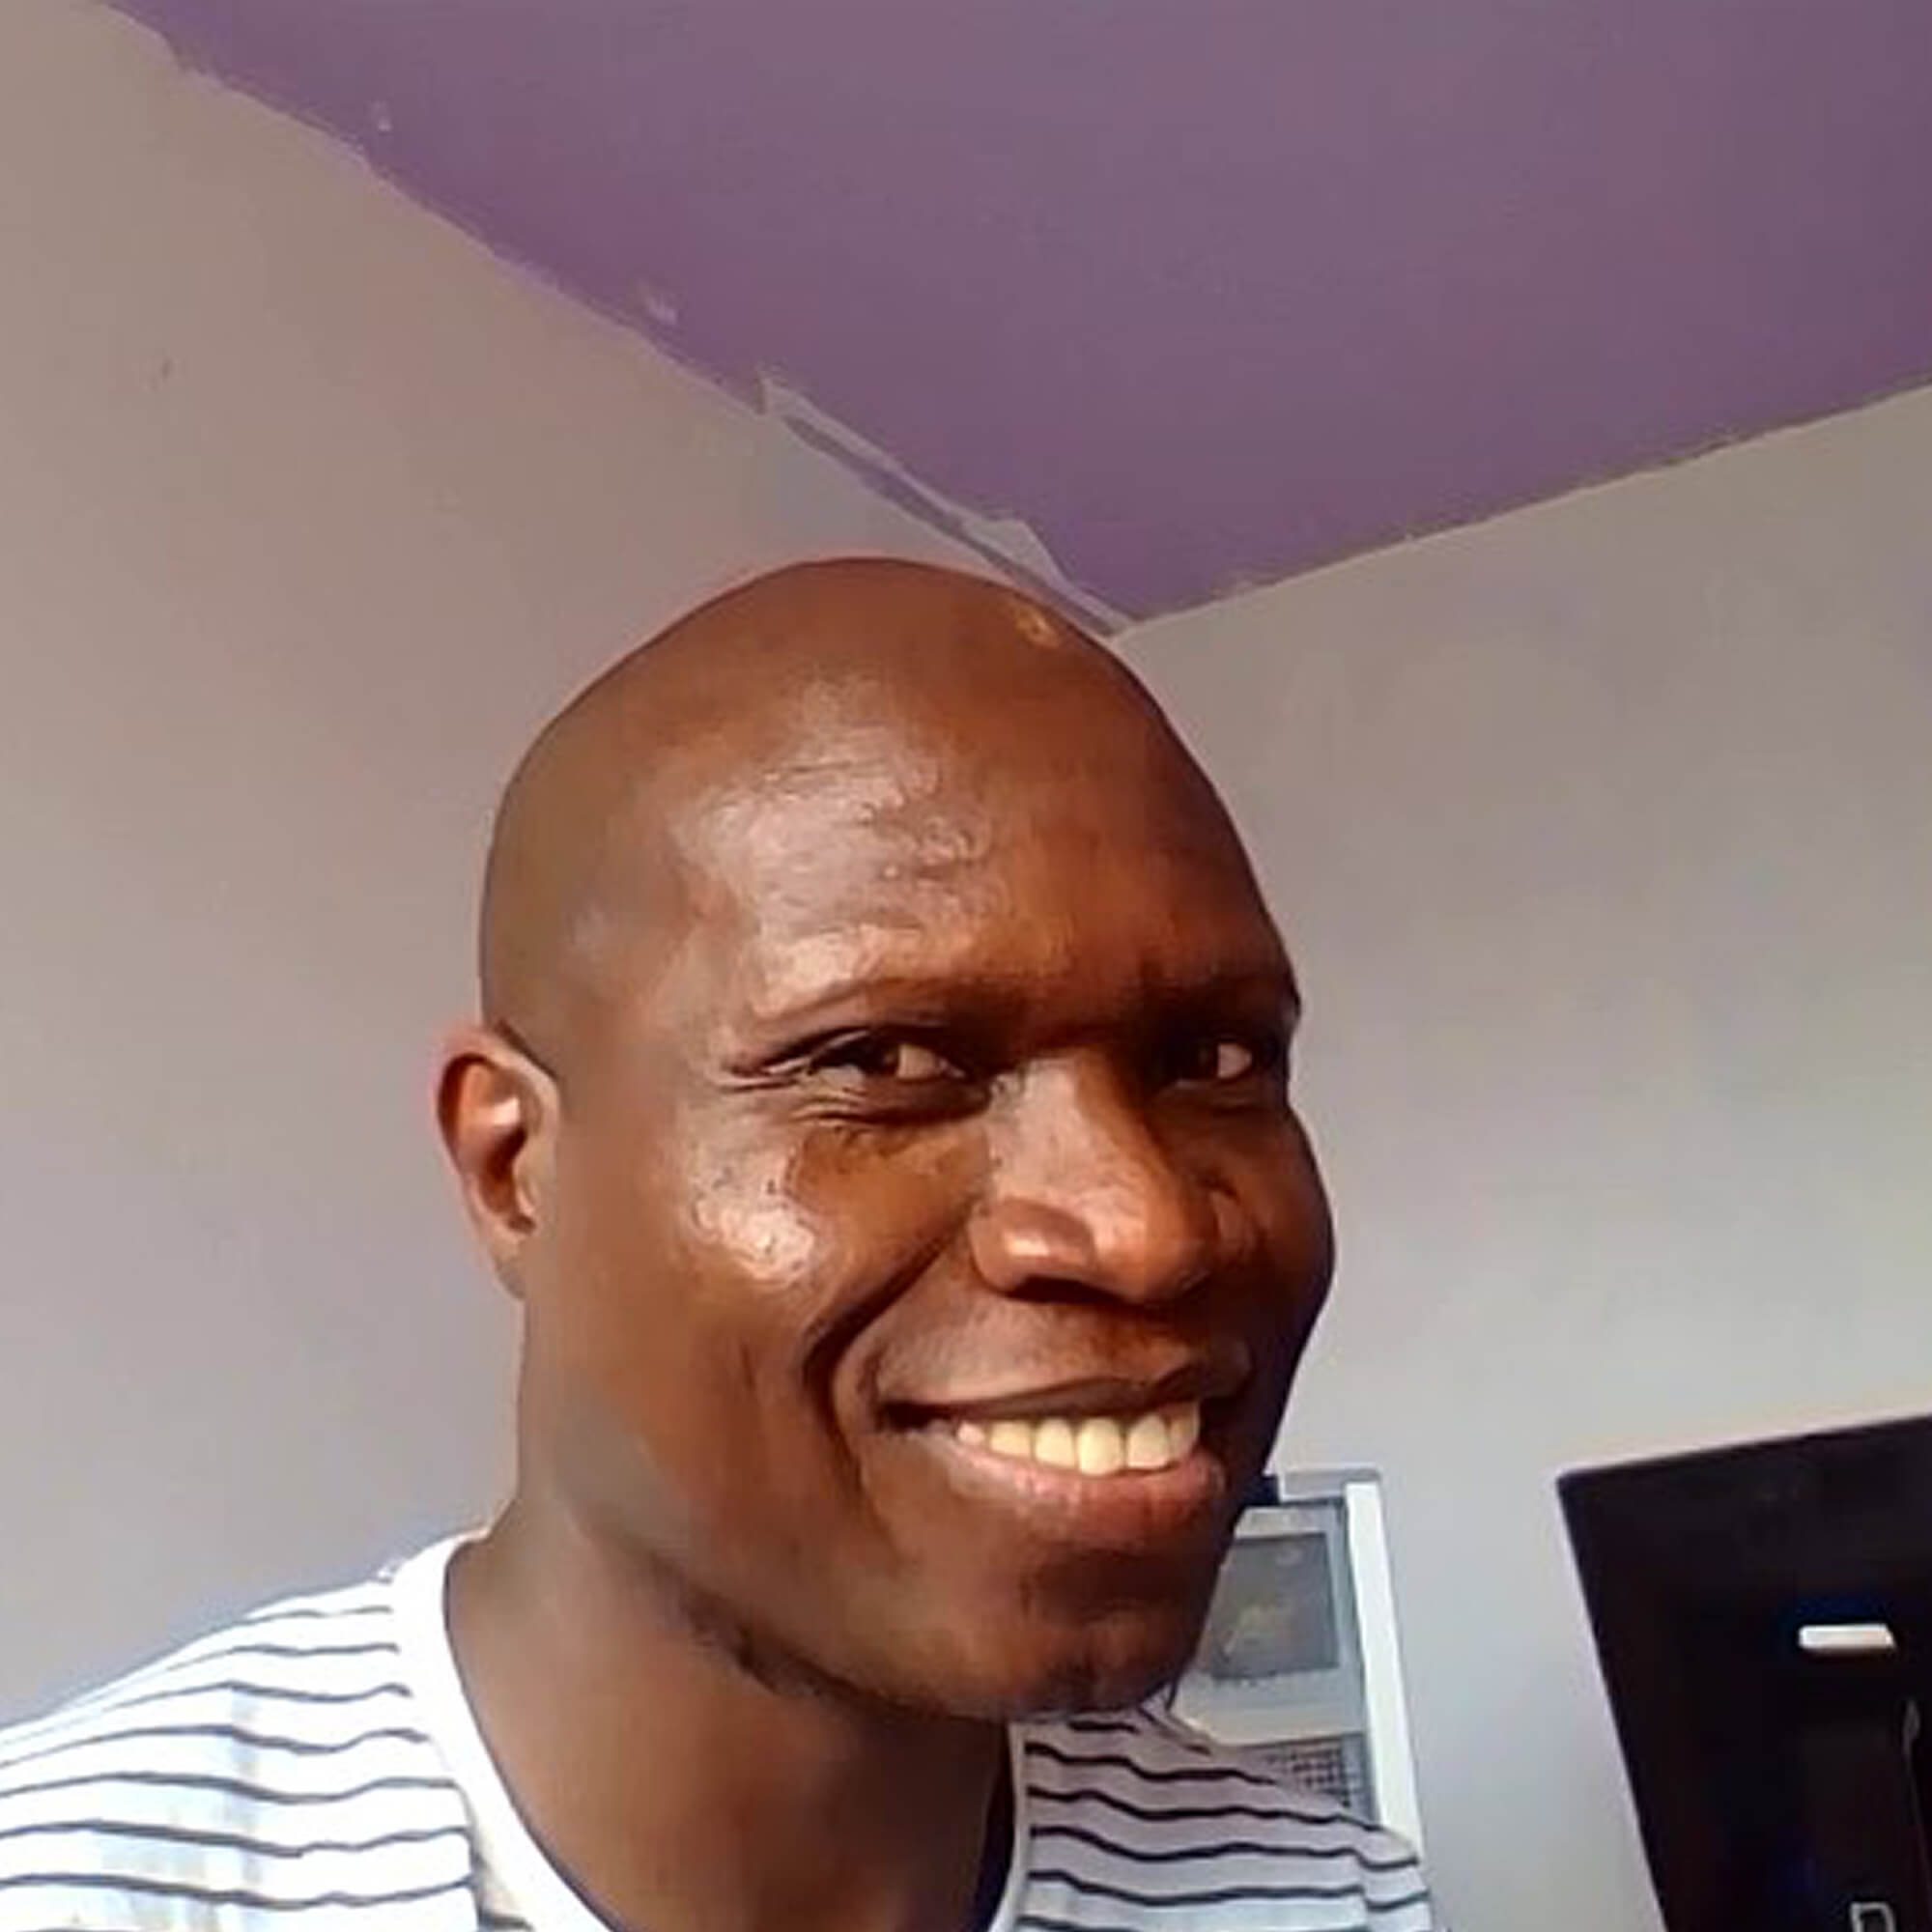 Mthulisi smiling next to a laptop